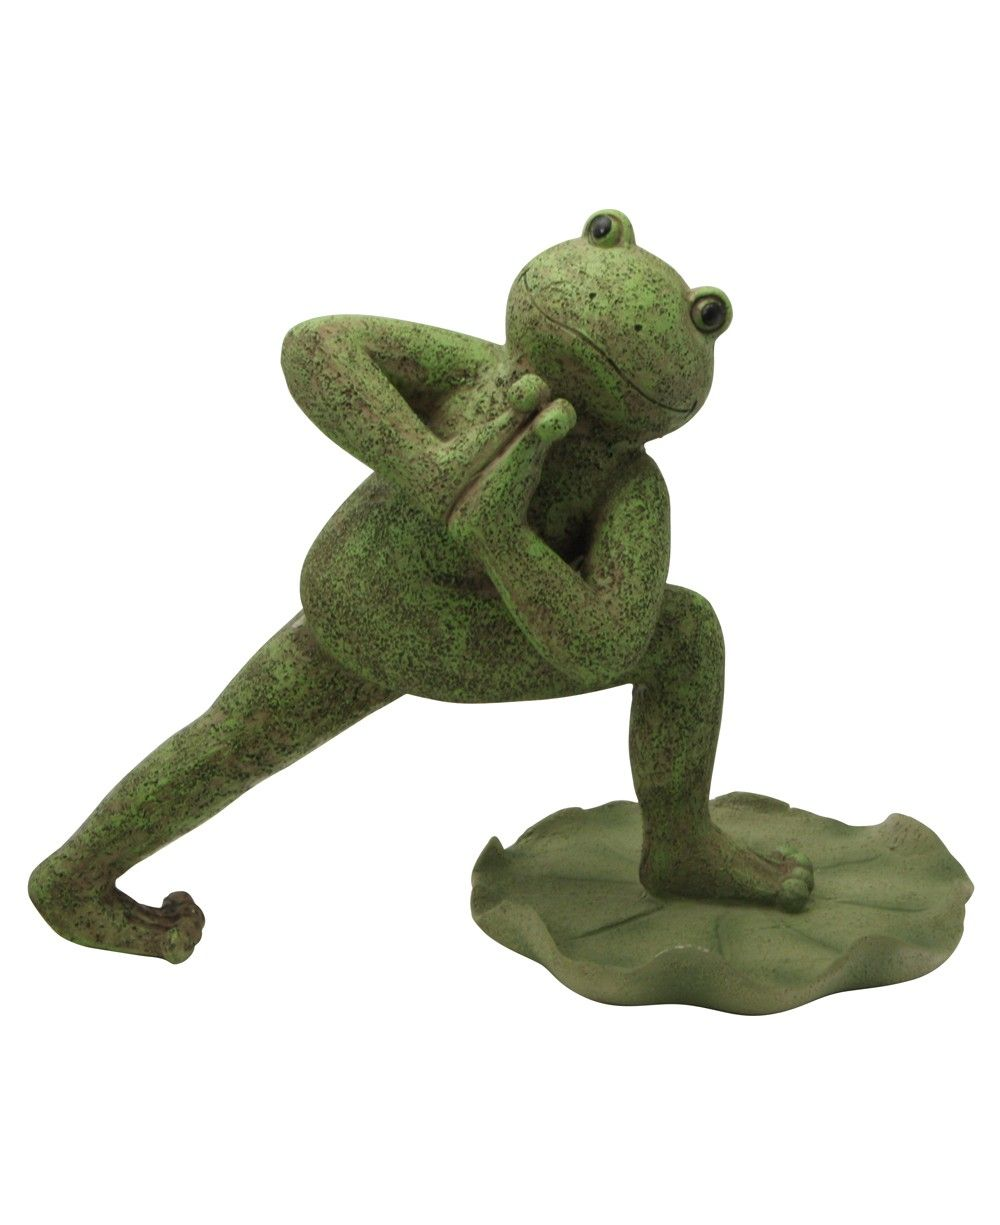 Yoga Frog Garden Statues: Triangle Pose Frog